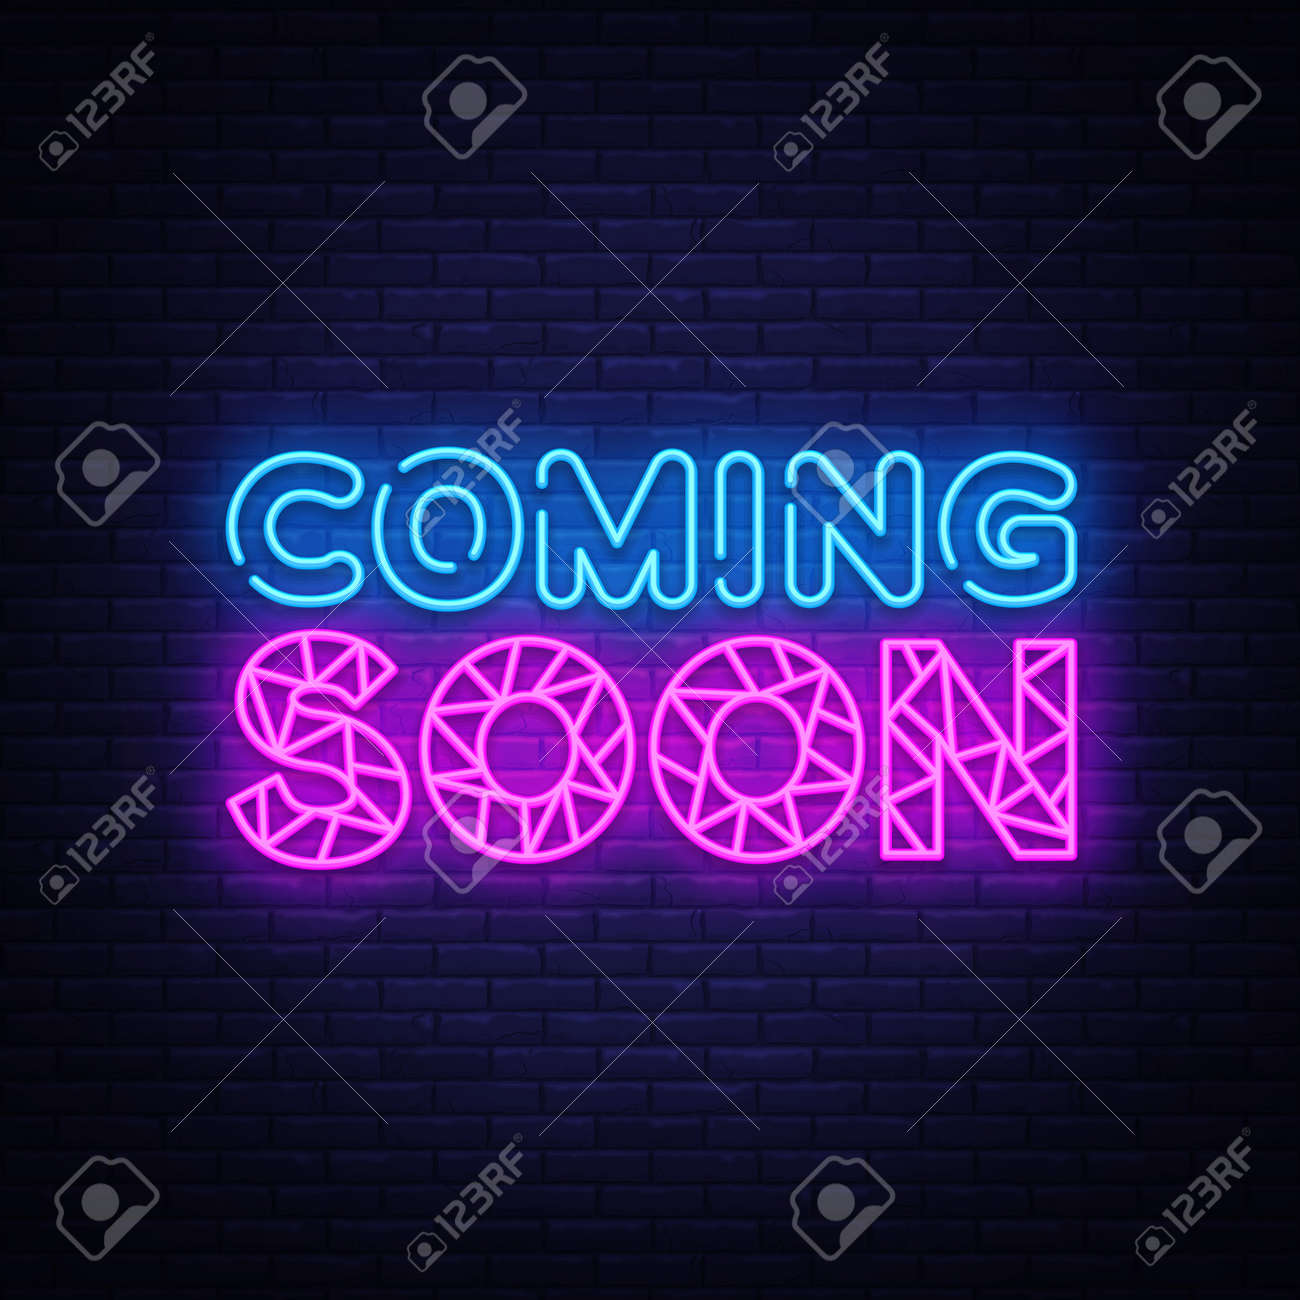 Coming Soon Neon Sign Vector Coming Soon Design Template Neon Royalty Free Cliparts Vectors And Stock Illustration Image 118742478